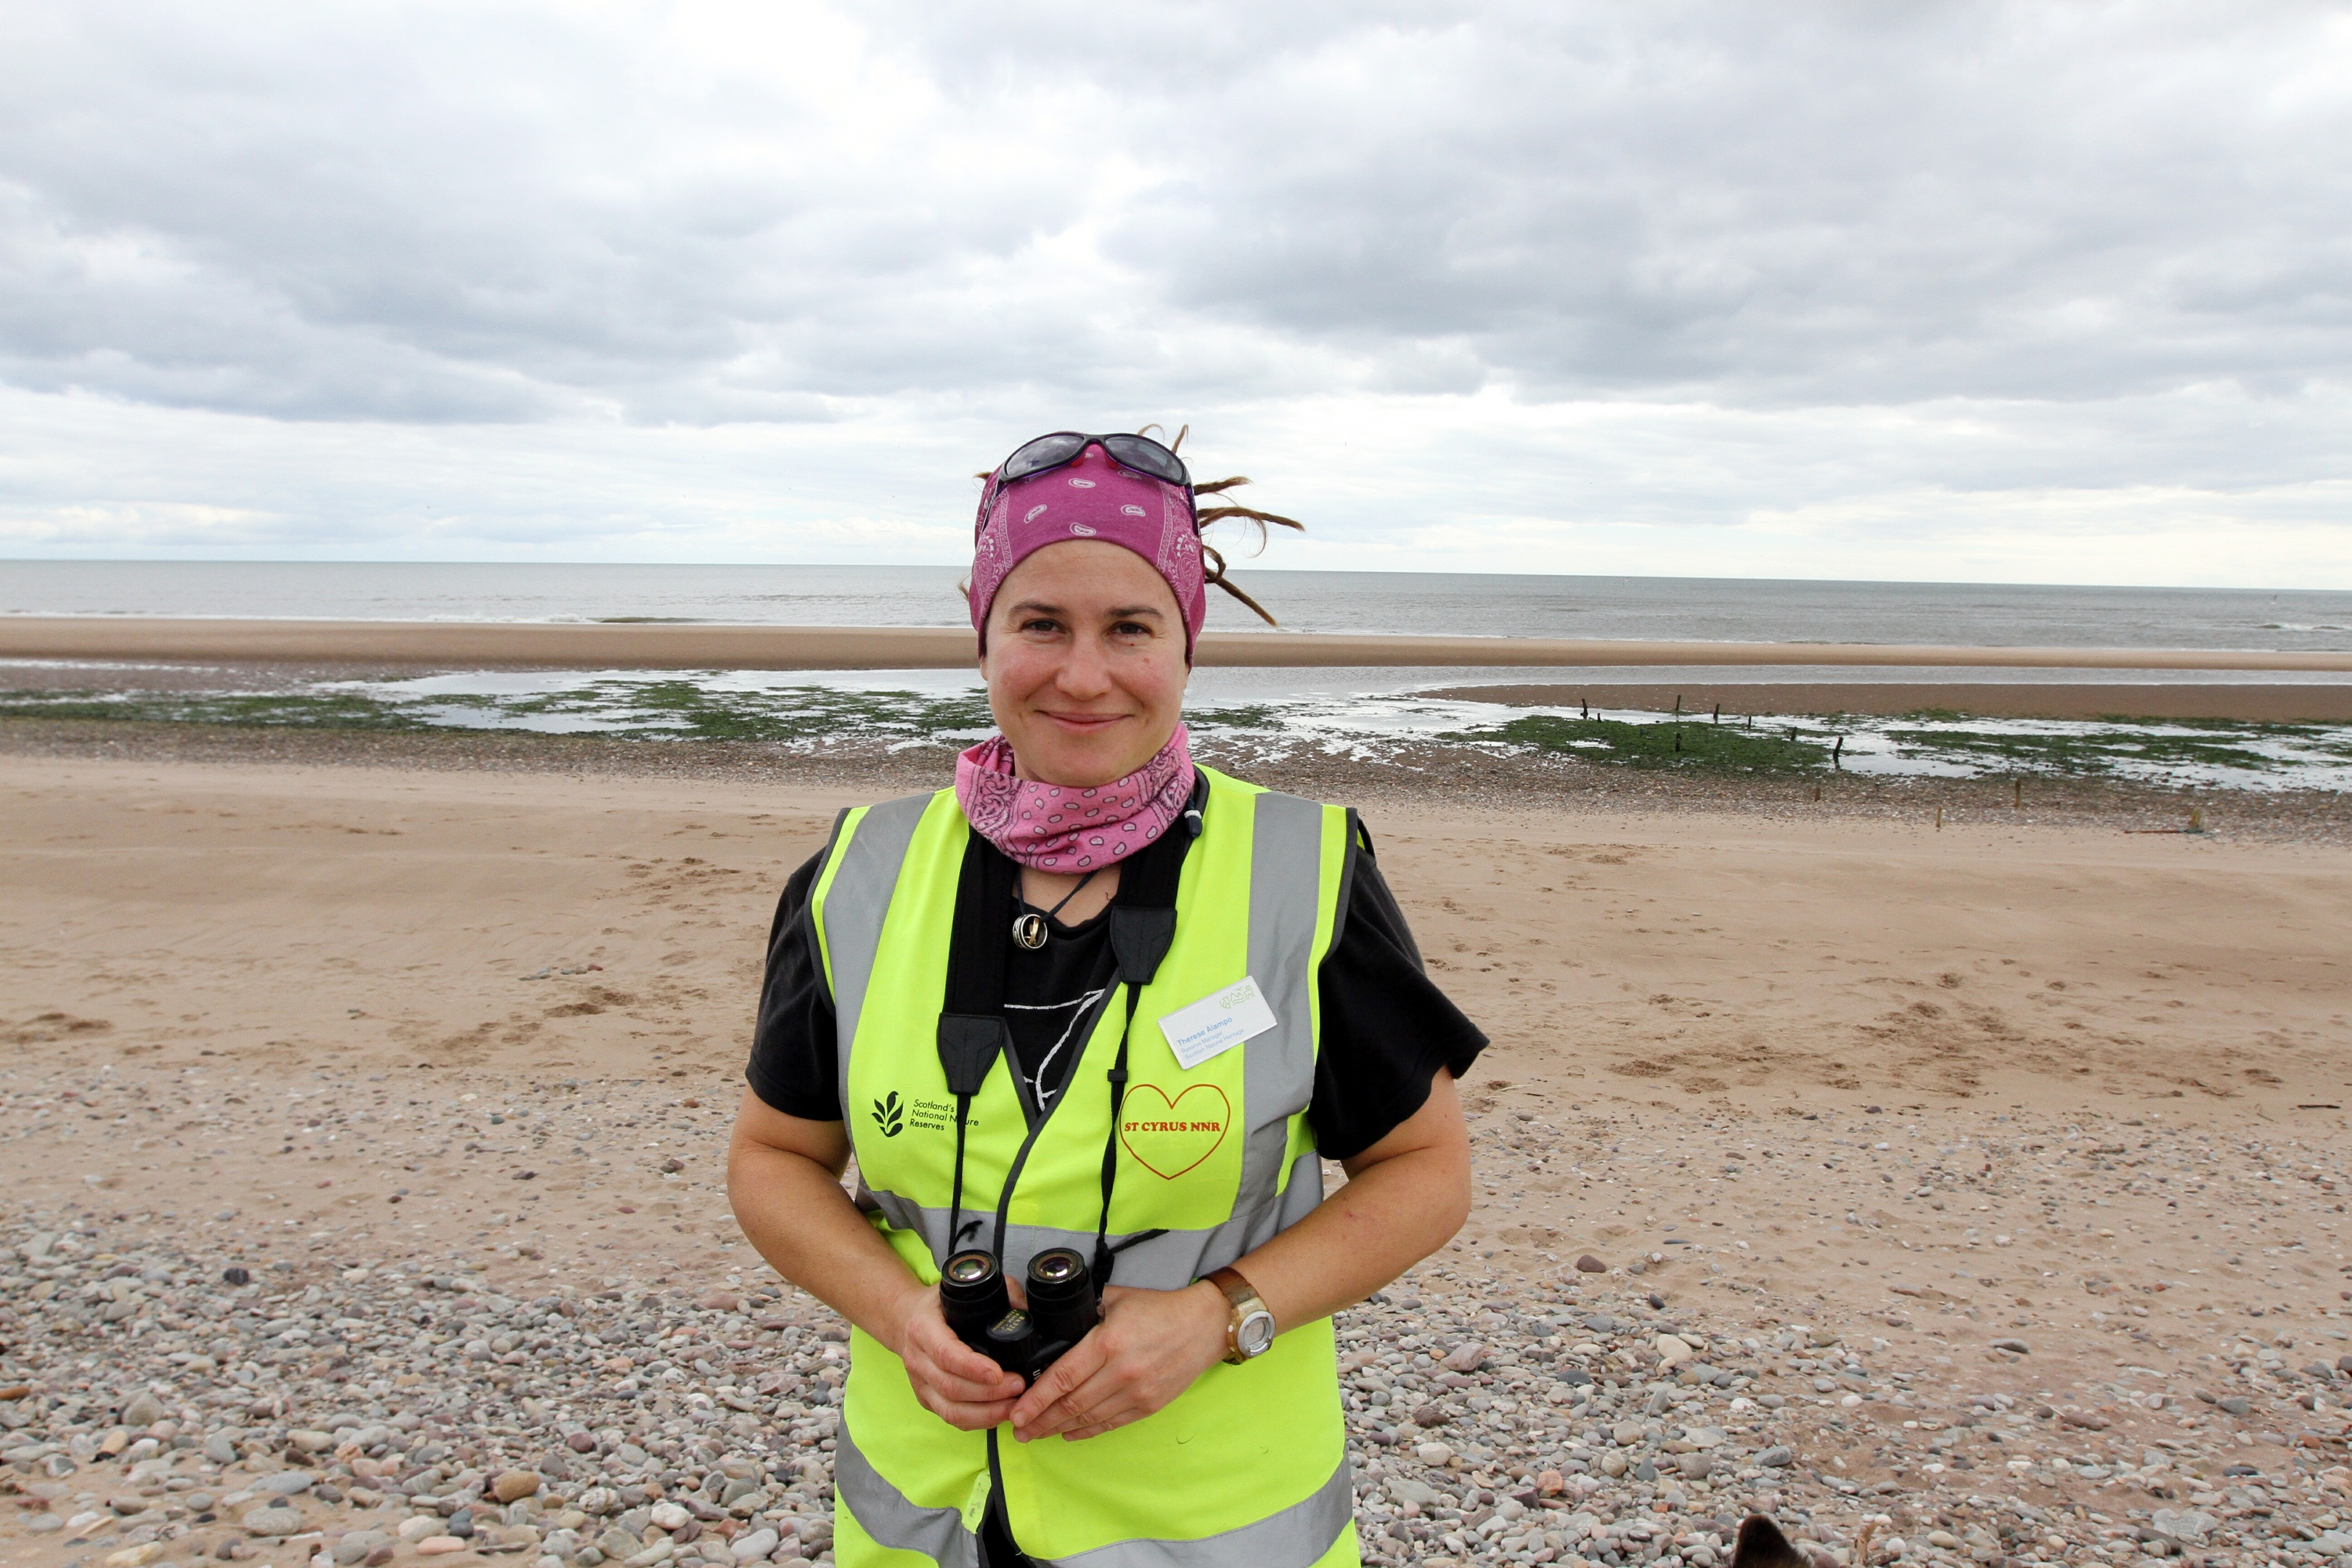 St Cyrus nature reserve manager Therese Alampo